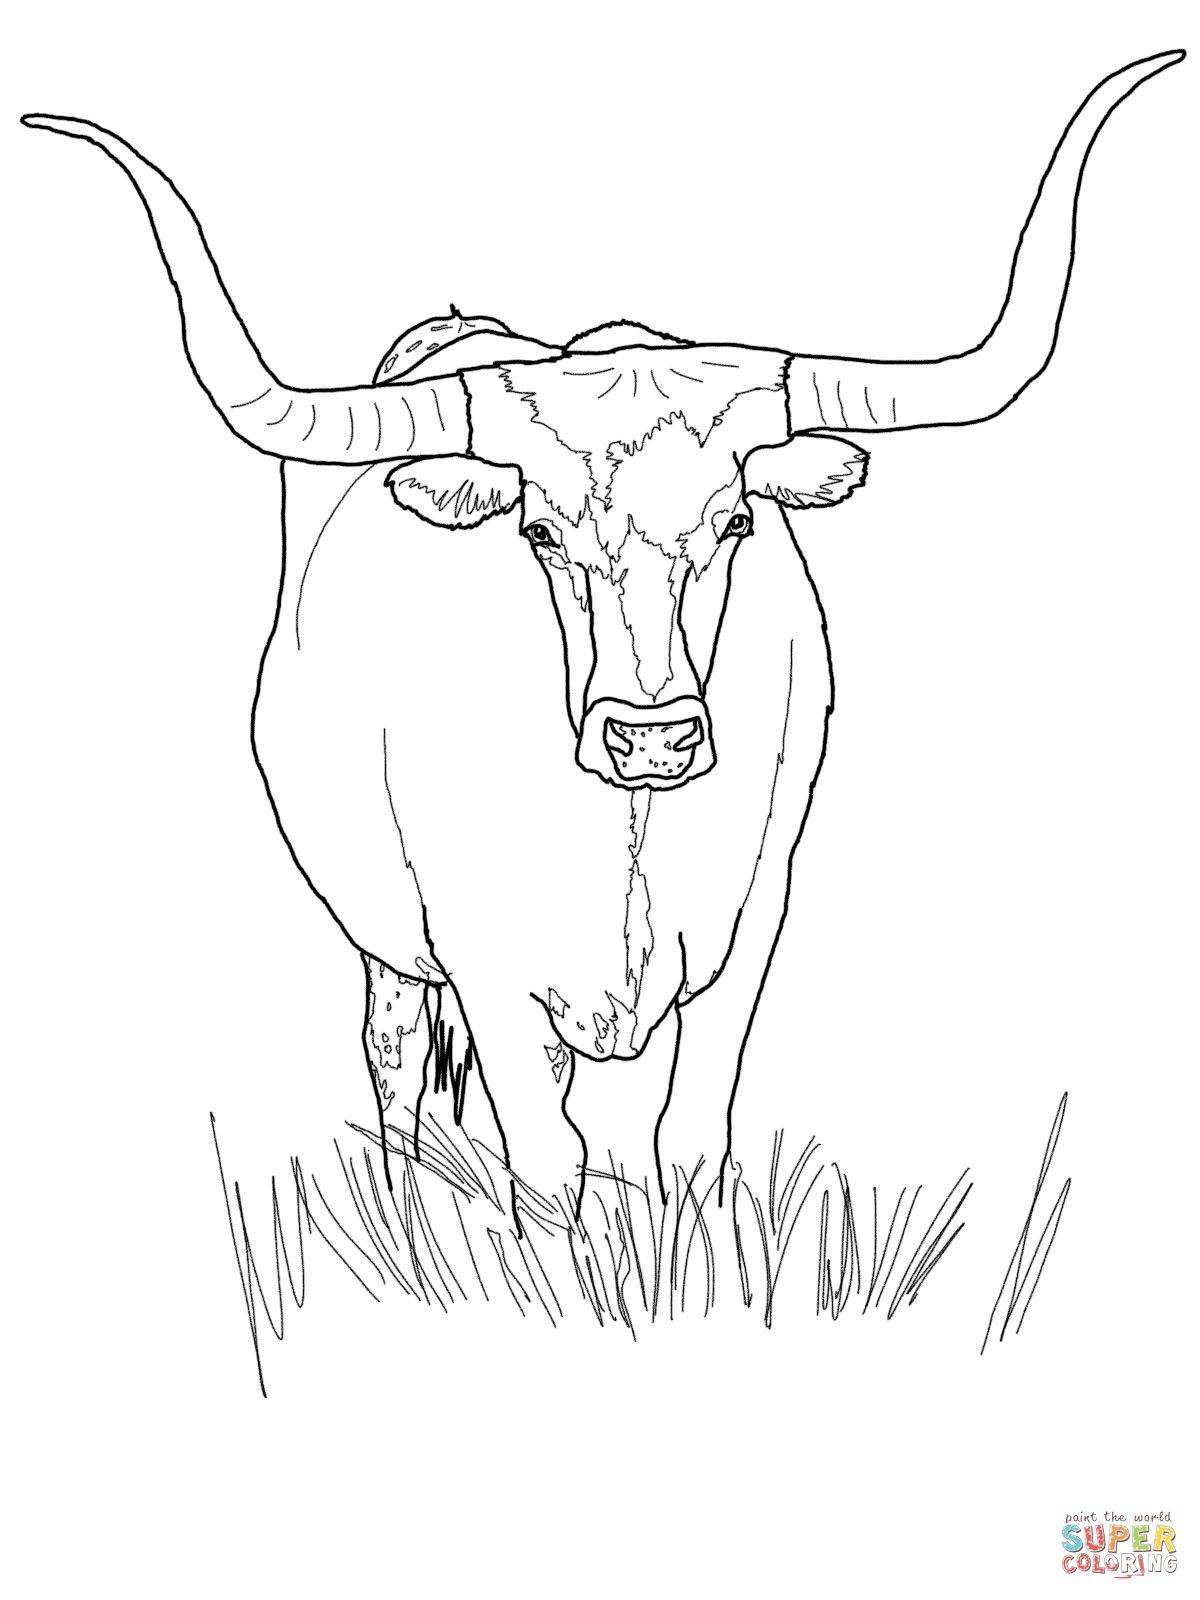 Pin By Jill Martinez On For Dad Popo Cow Coloring Pages